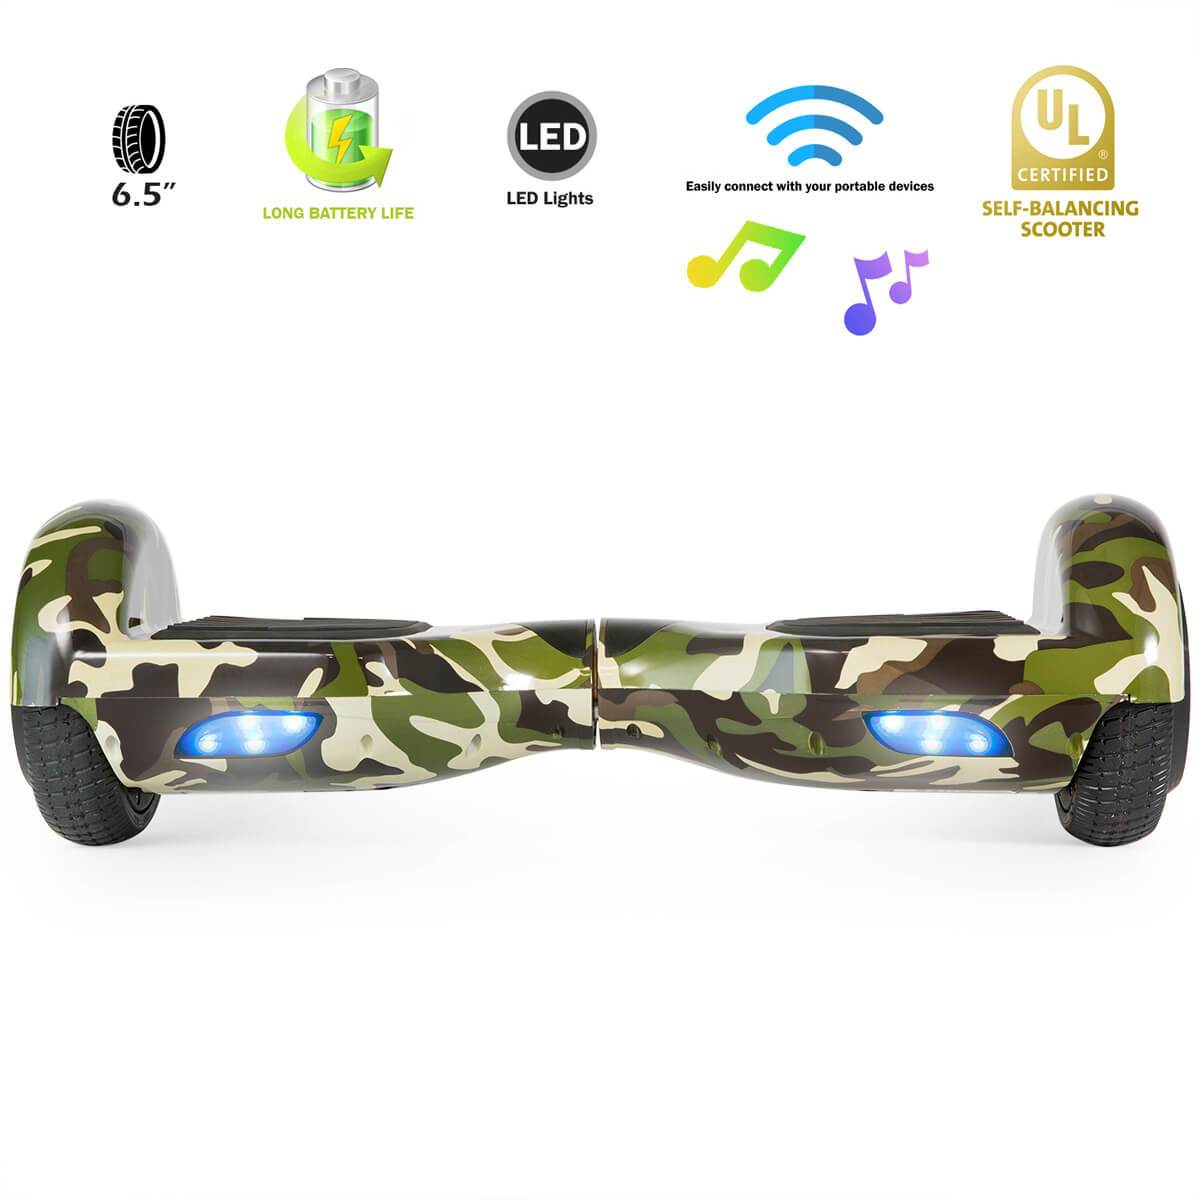 XPRIT SBW666 Camouflage Hoverboard with Bluetooth - HoverBoard4sale